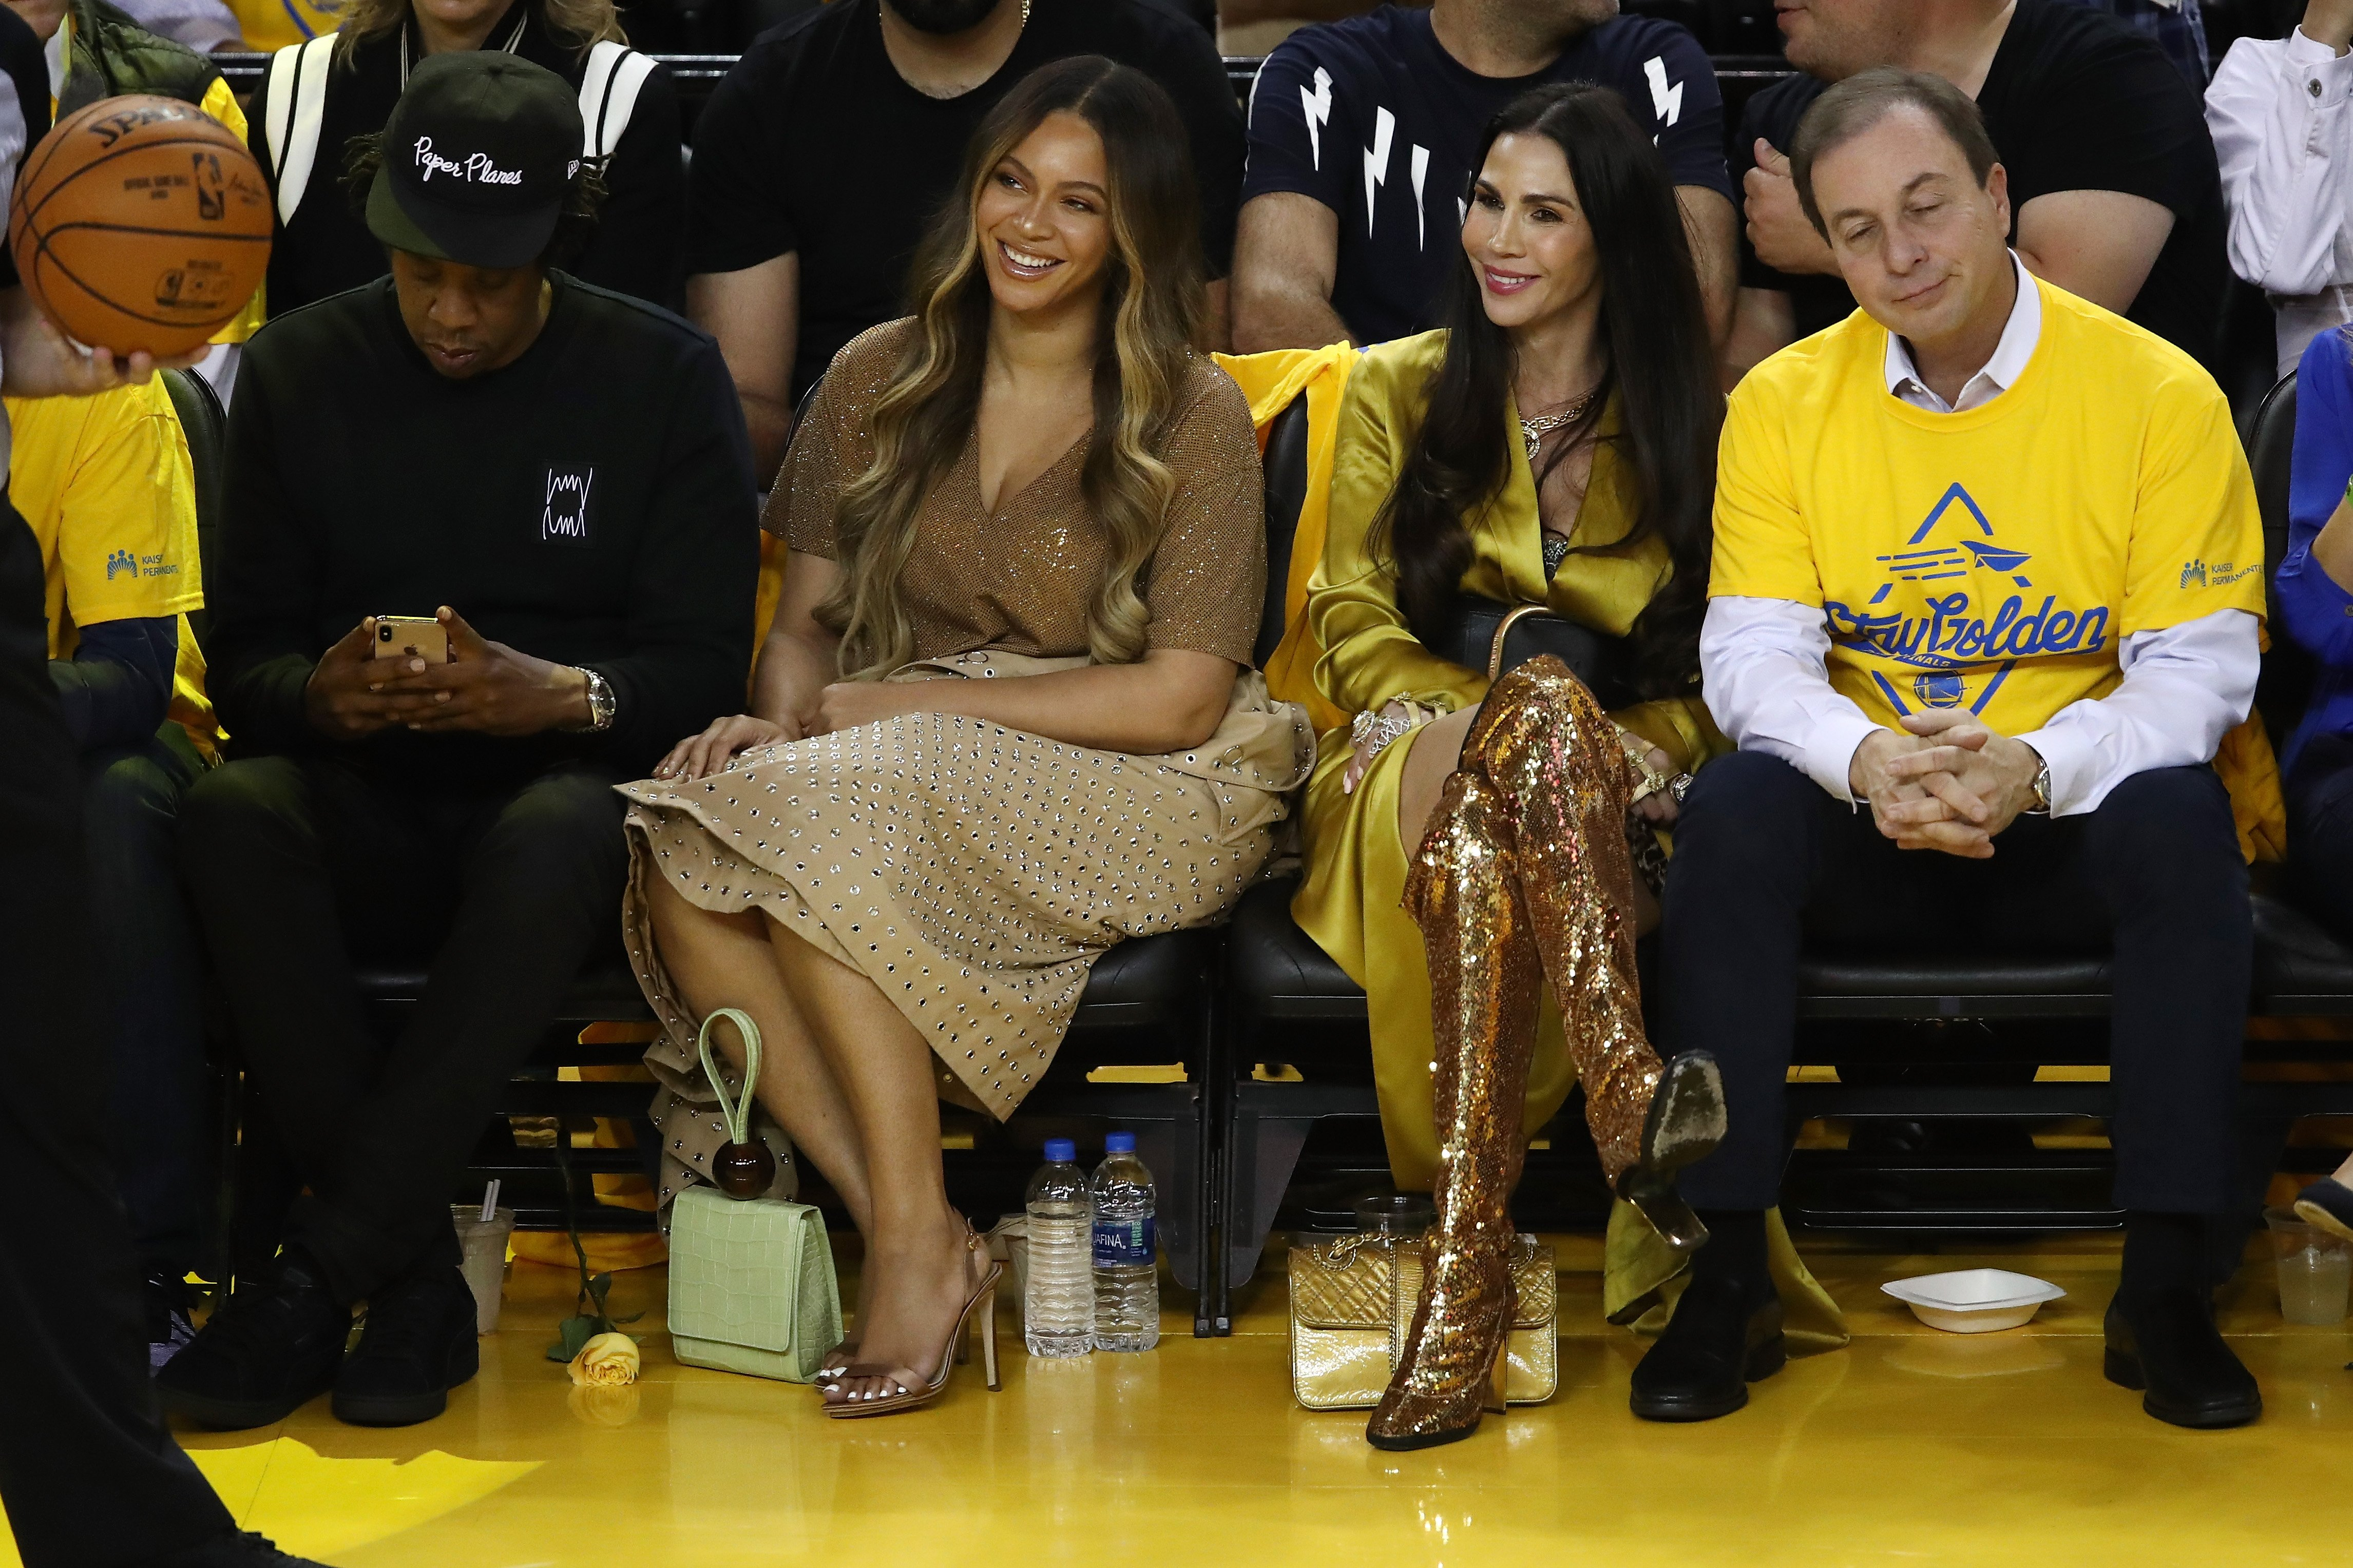 Jay-Z, Beyonce, Nicole Curran & Joseph Lacob at Game Three of the 2019 NBA Finals between the Golden State Warriors and the Toronto Raptors on June 05, 2019 in Oakland, California. | Photo: Getty Images